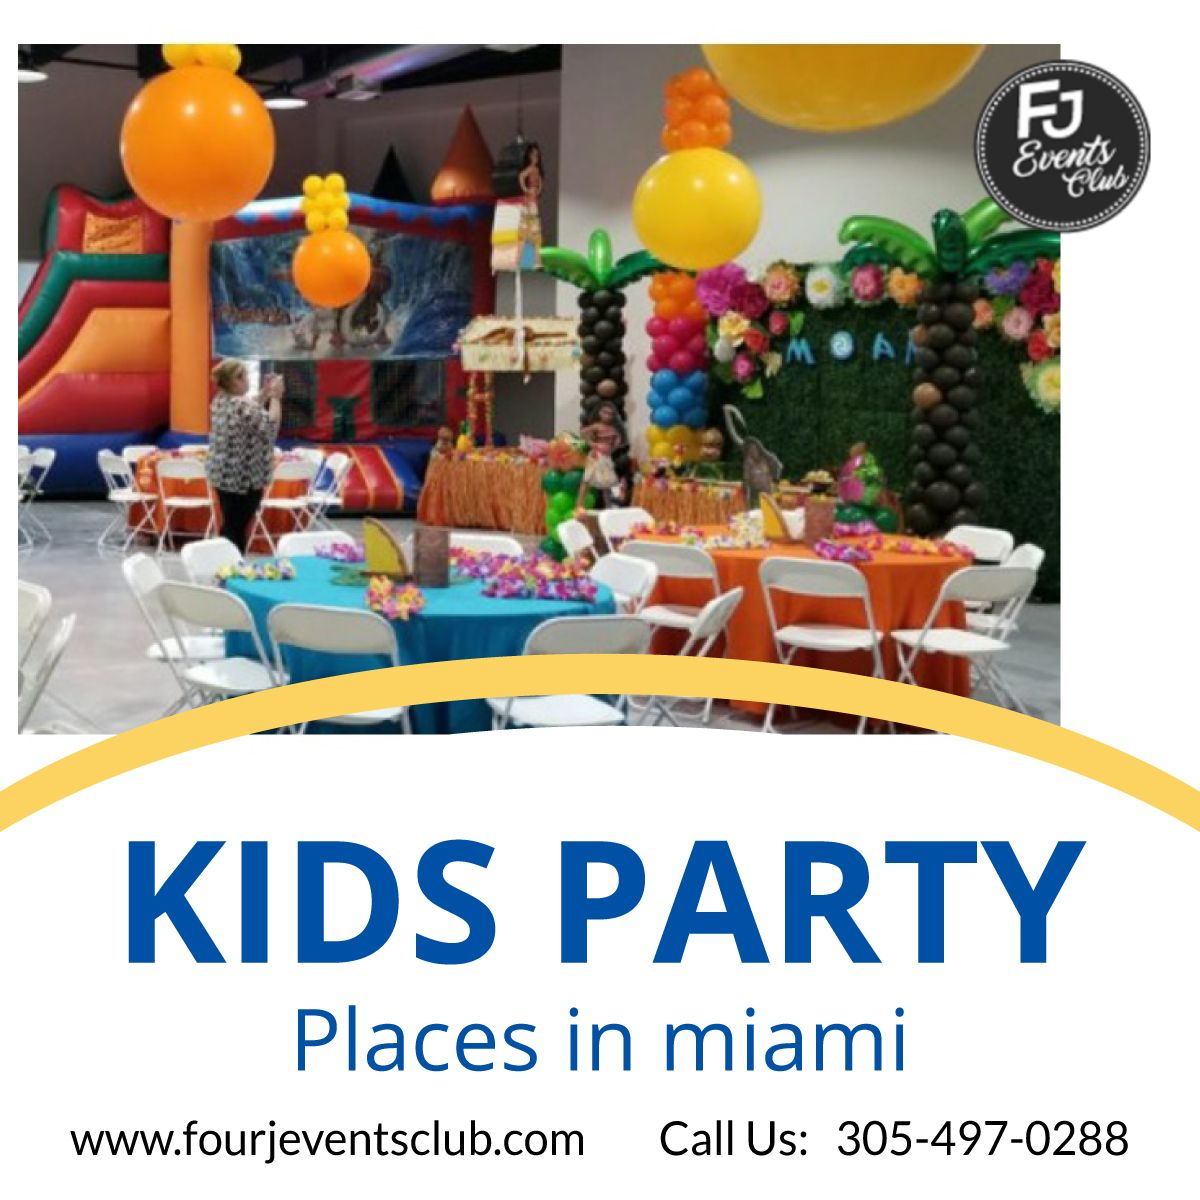 Kids Birthday Party Places in Miami in 2020 Party places